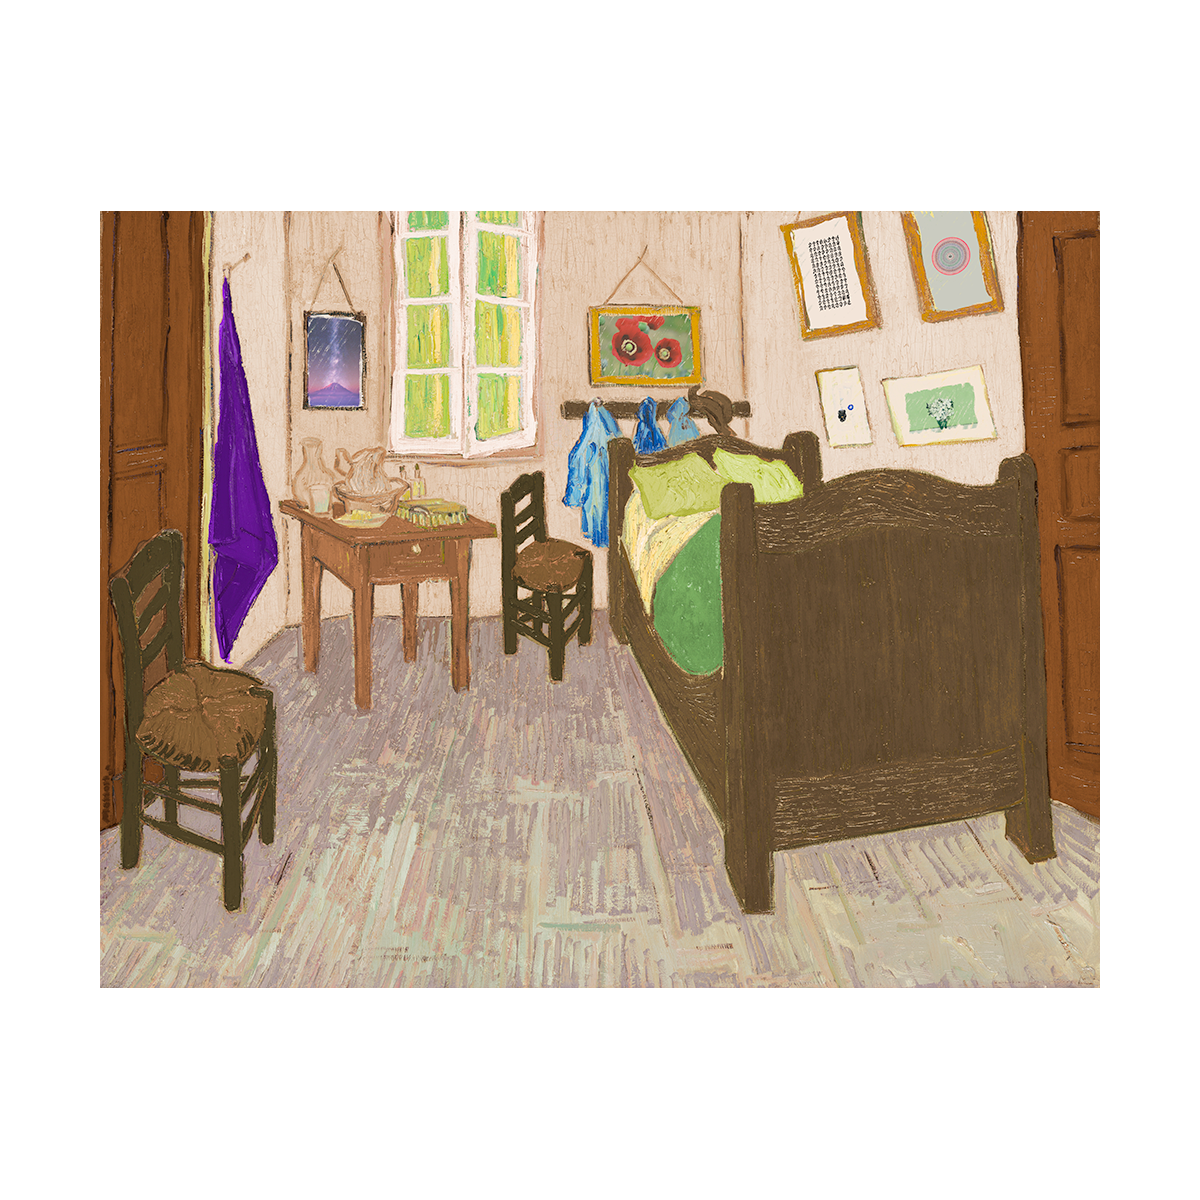 A painting of a fusion of the bedroom as my divorced parents' houses as one inspired by van Gogh's bedroom series